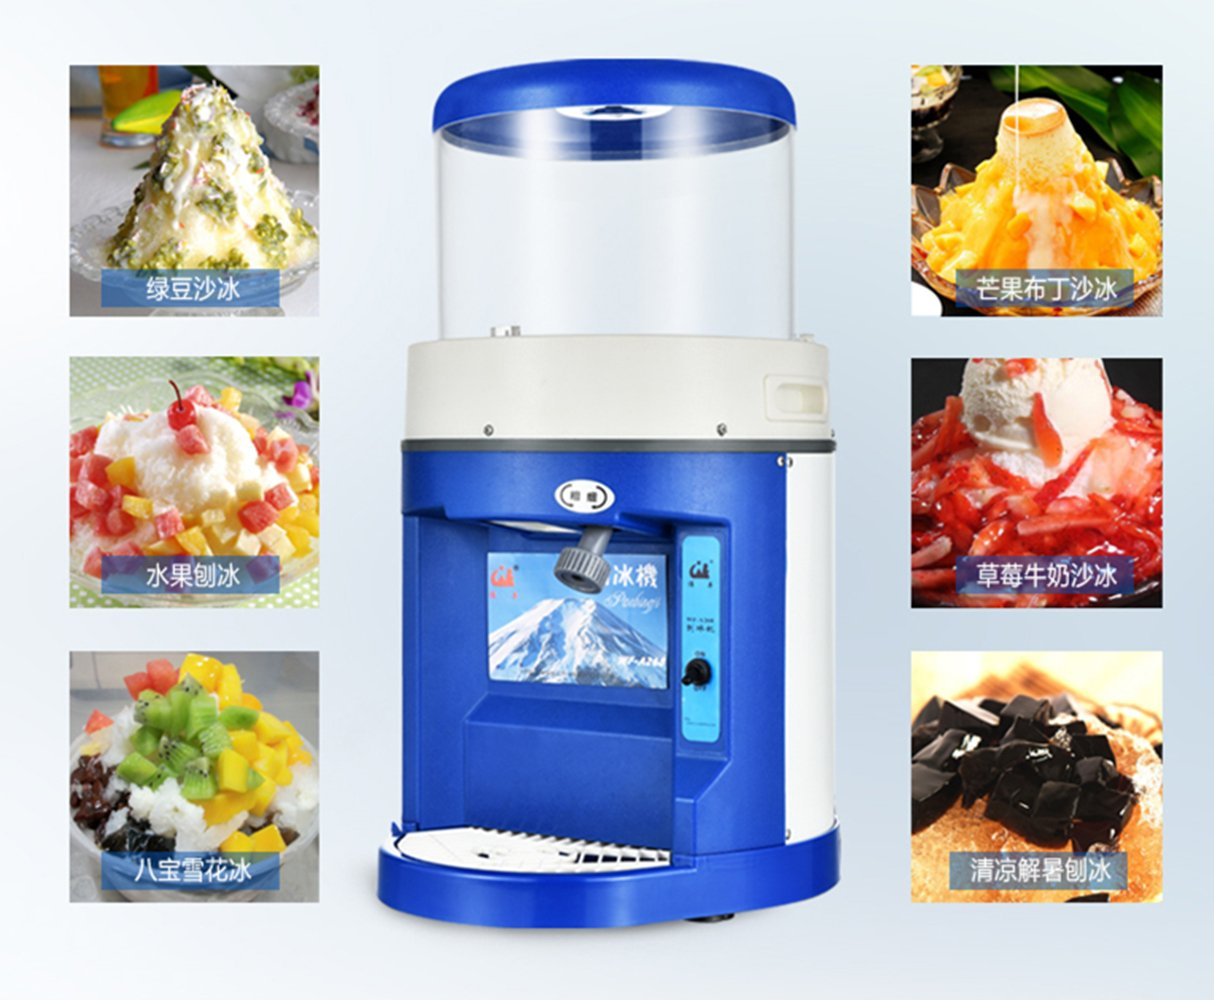 WF-A268 Commercial full automatic ice machine electric ice crusher shaver machine for commercial shop Speed : 8kg / min Capcity: 6kg